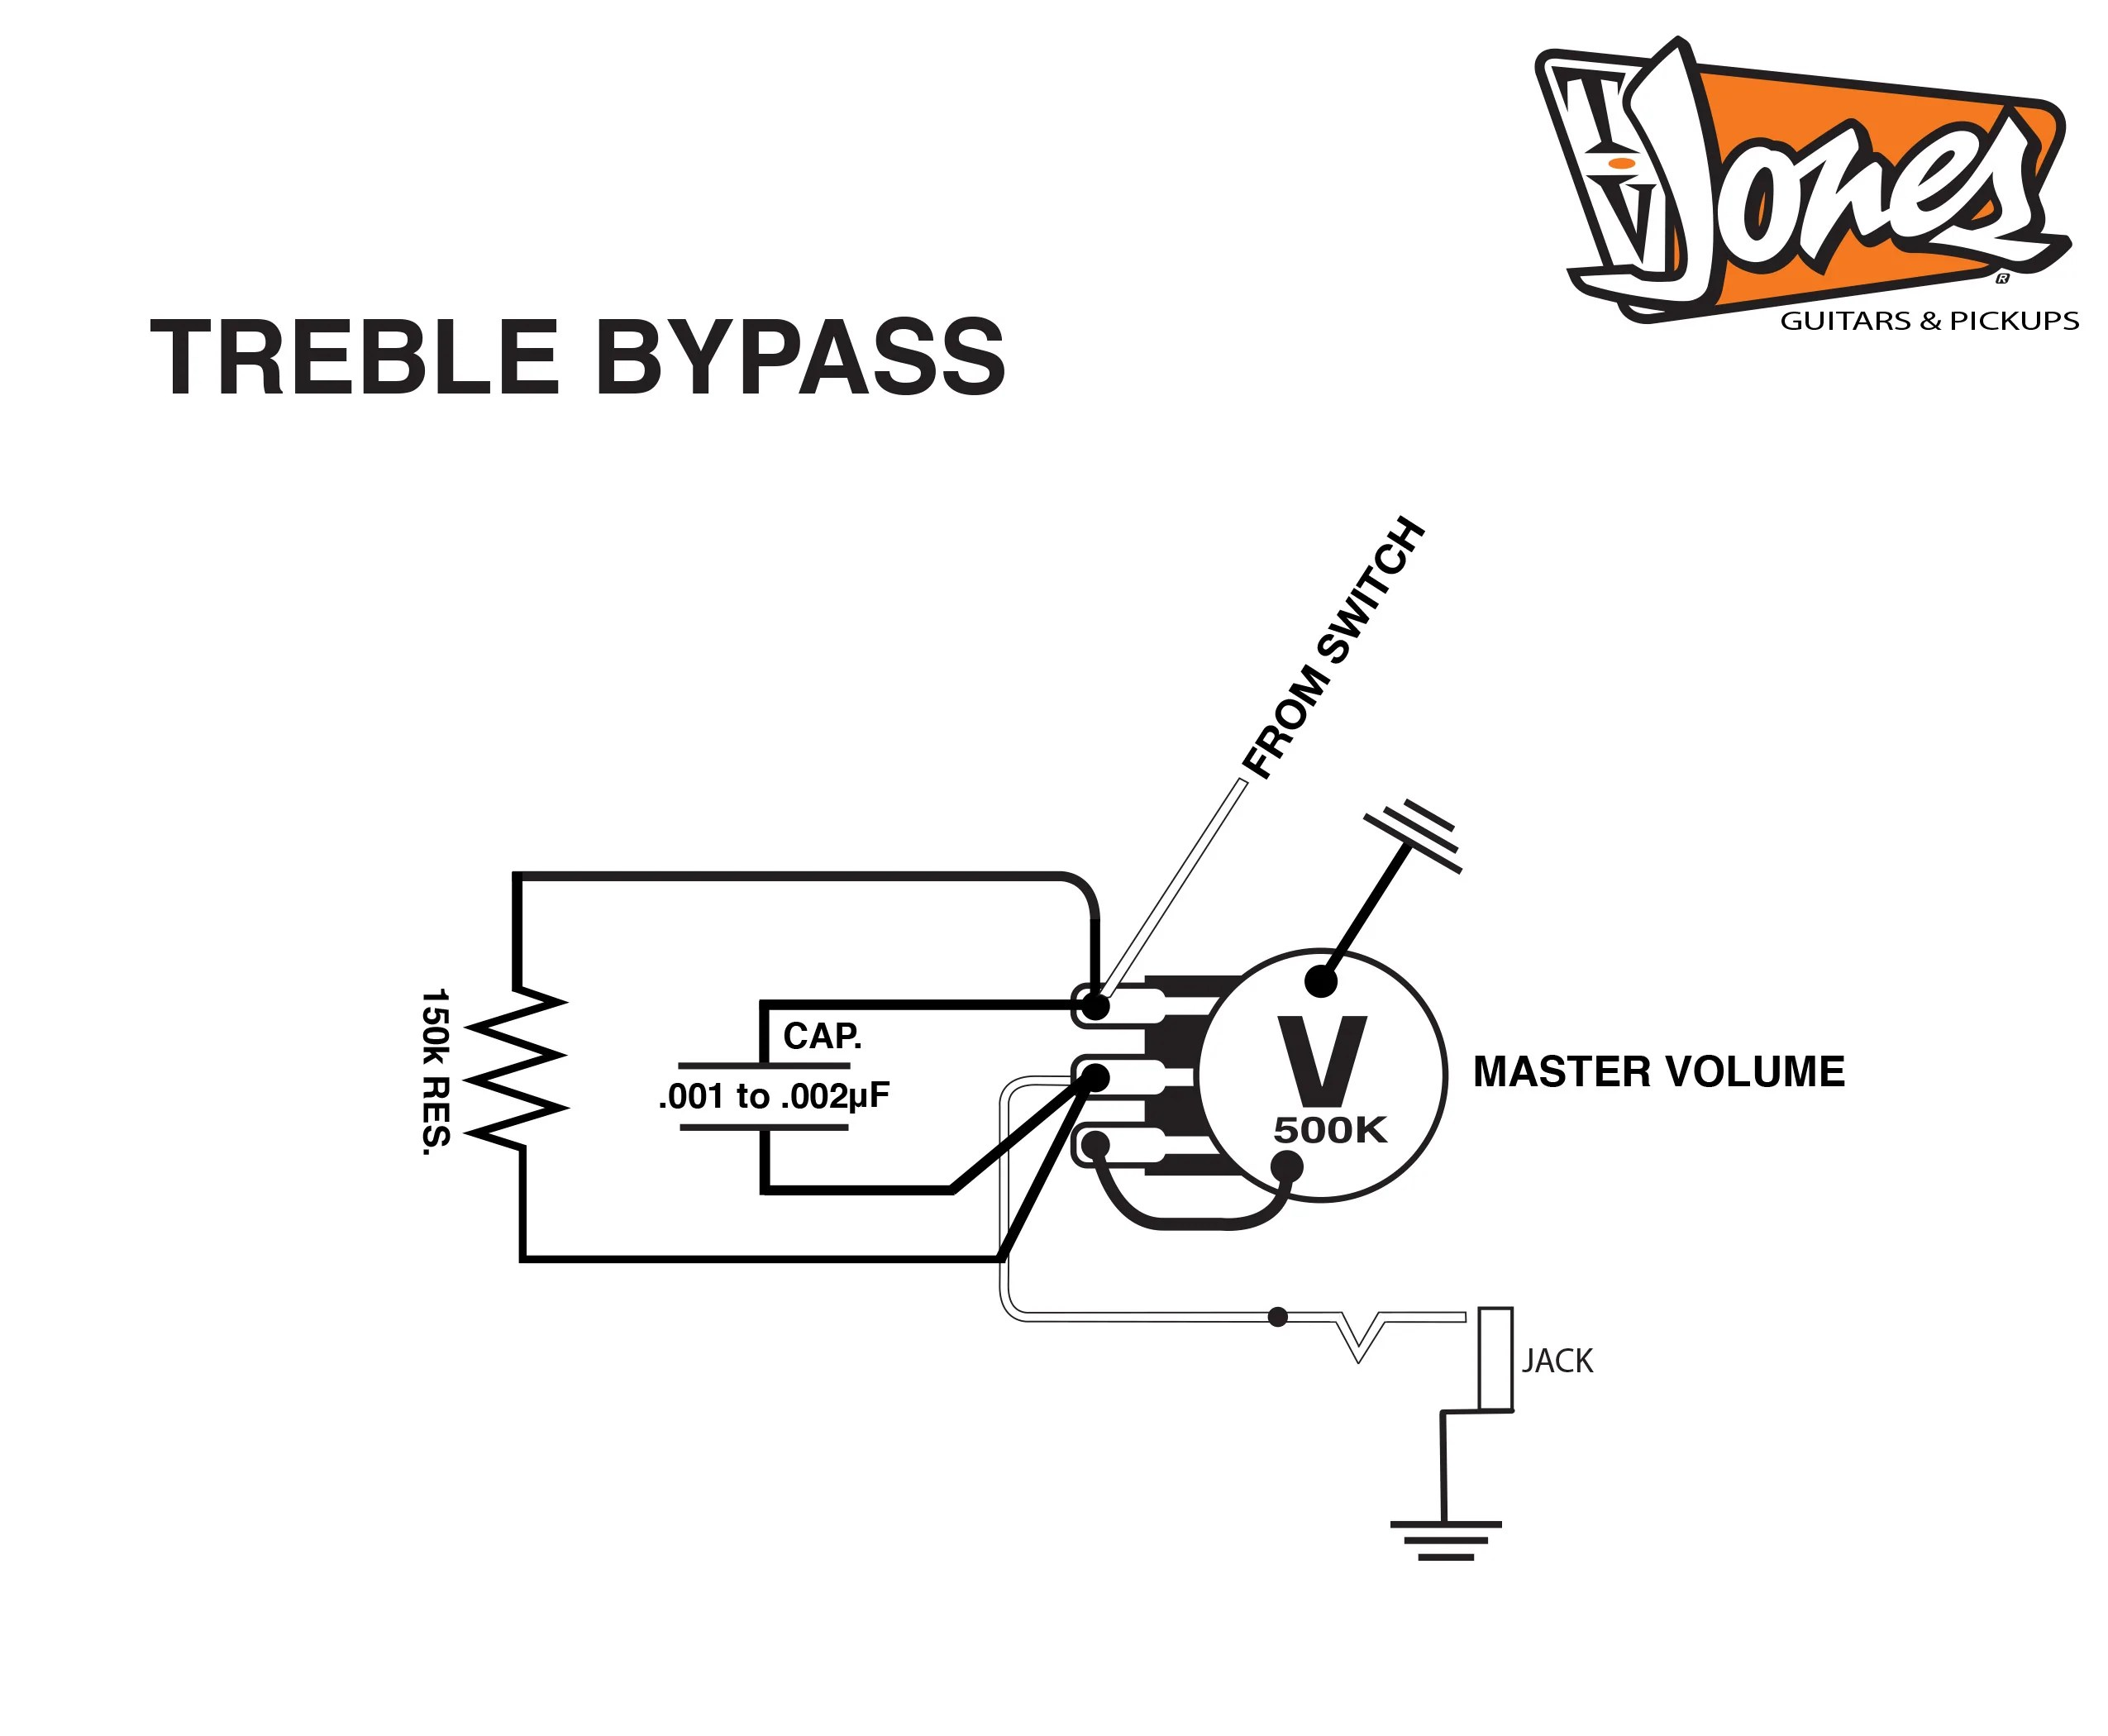 small resolution of you can find the wiring diagram here under treble bypass